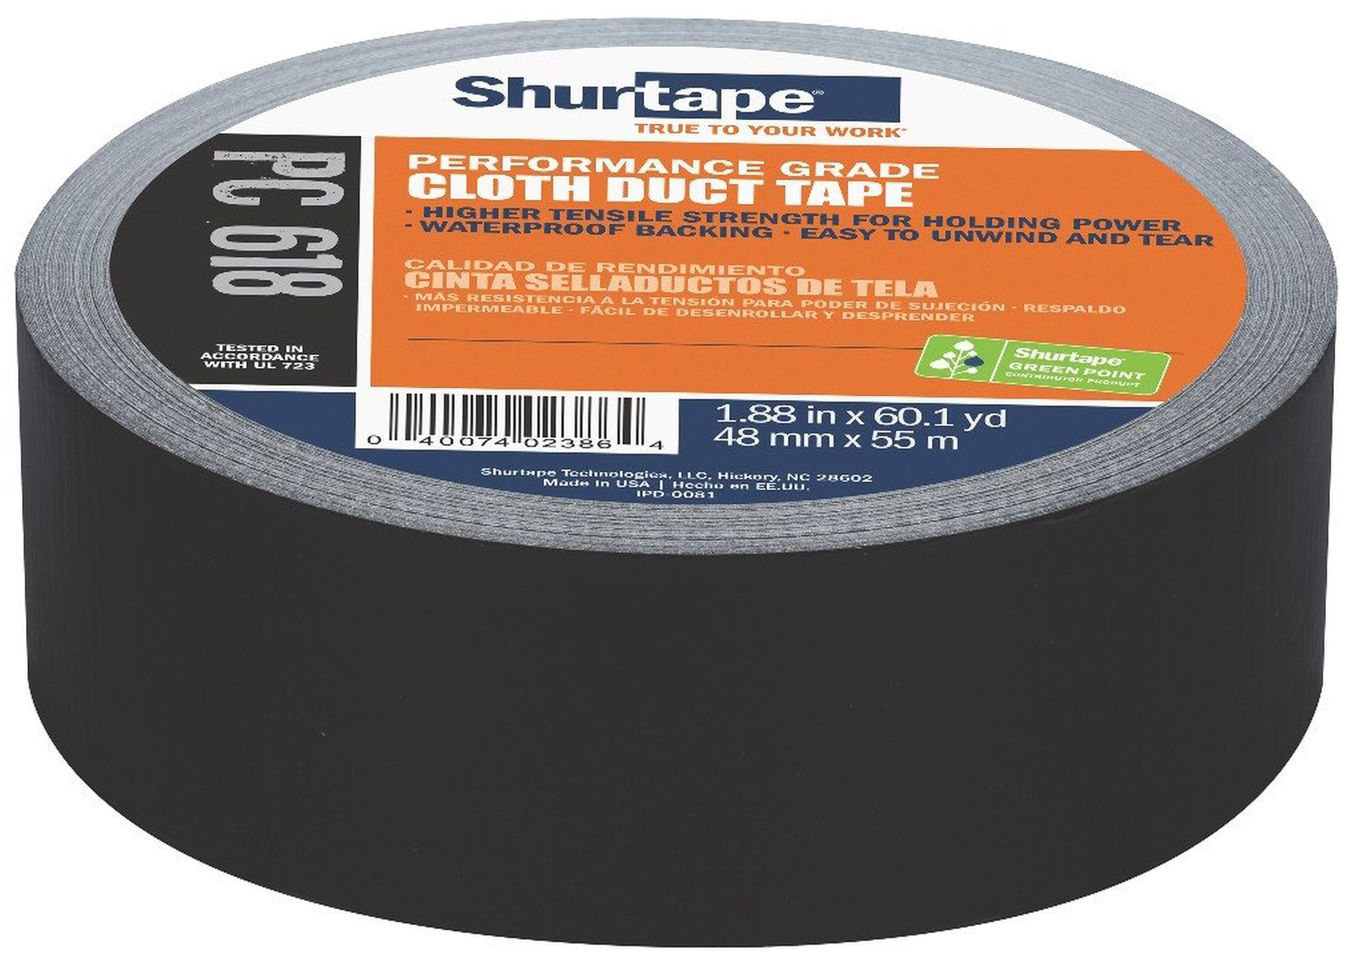 Performance Grade Cloth Duct Tape